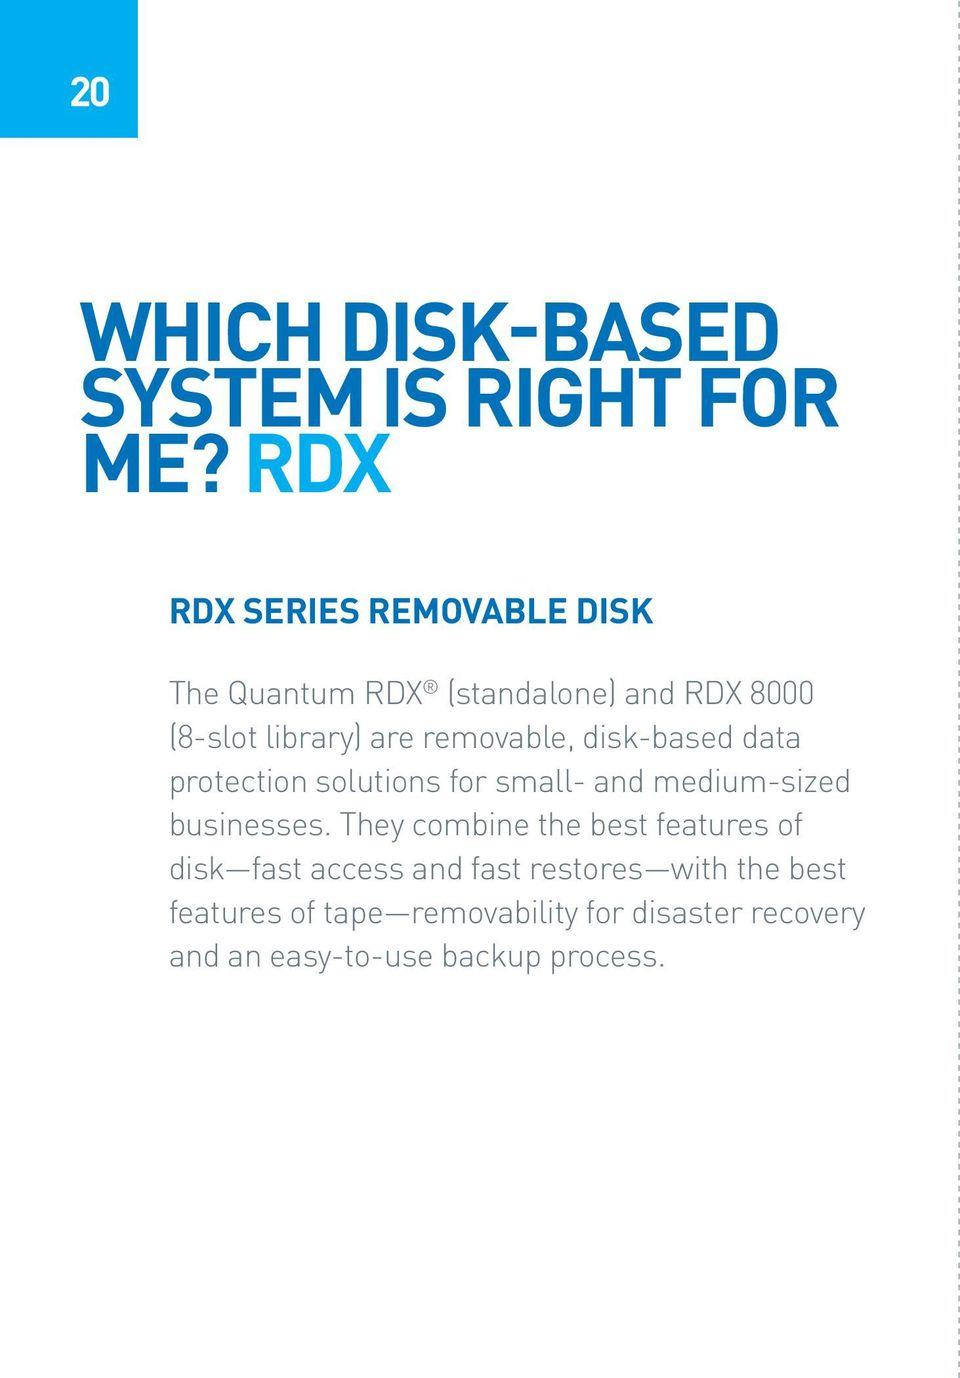 removable, disk-based data protection solutions for small- and medium-sized businesses.